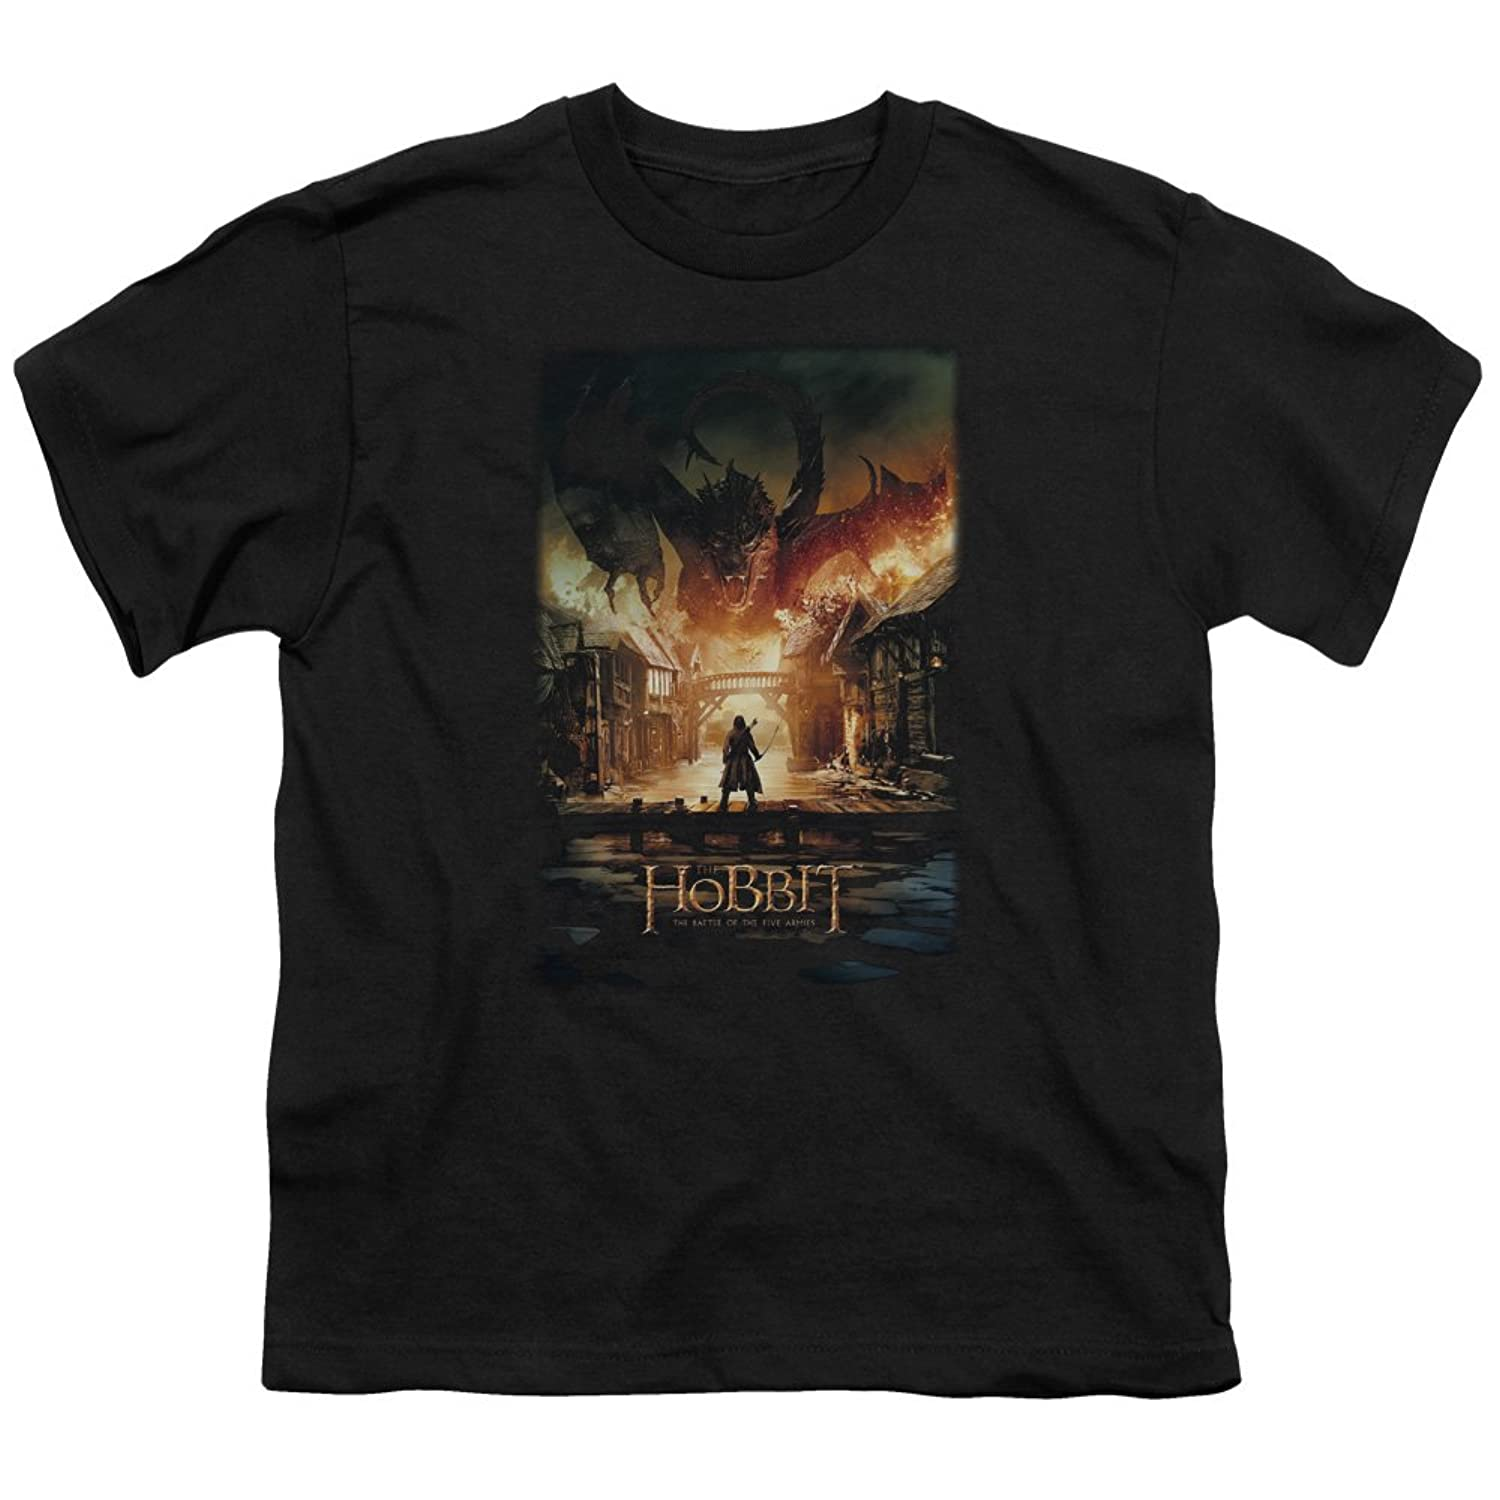 Hobbit - Youth Smaug Poster T-Shirt